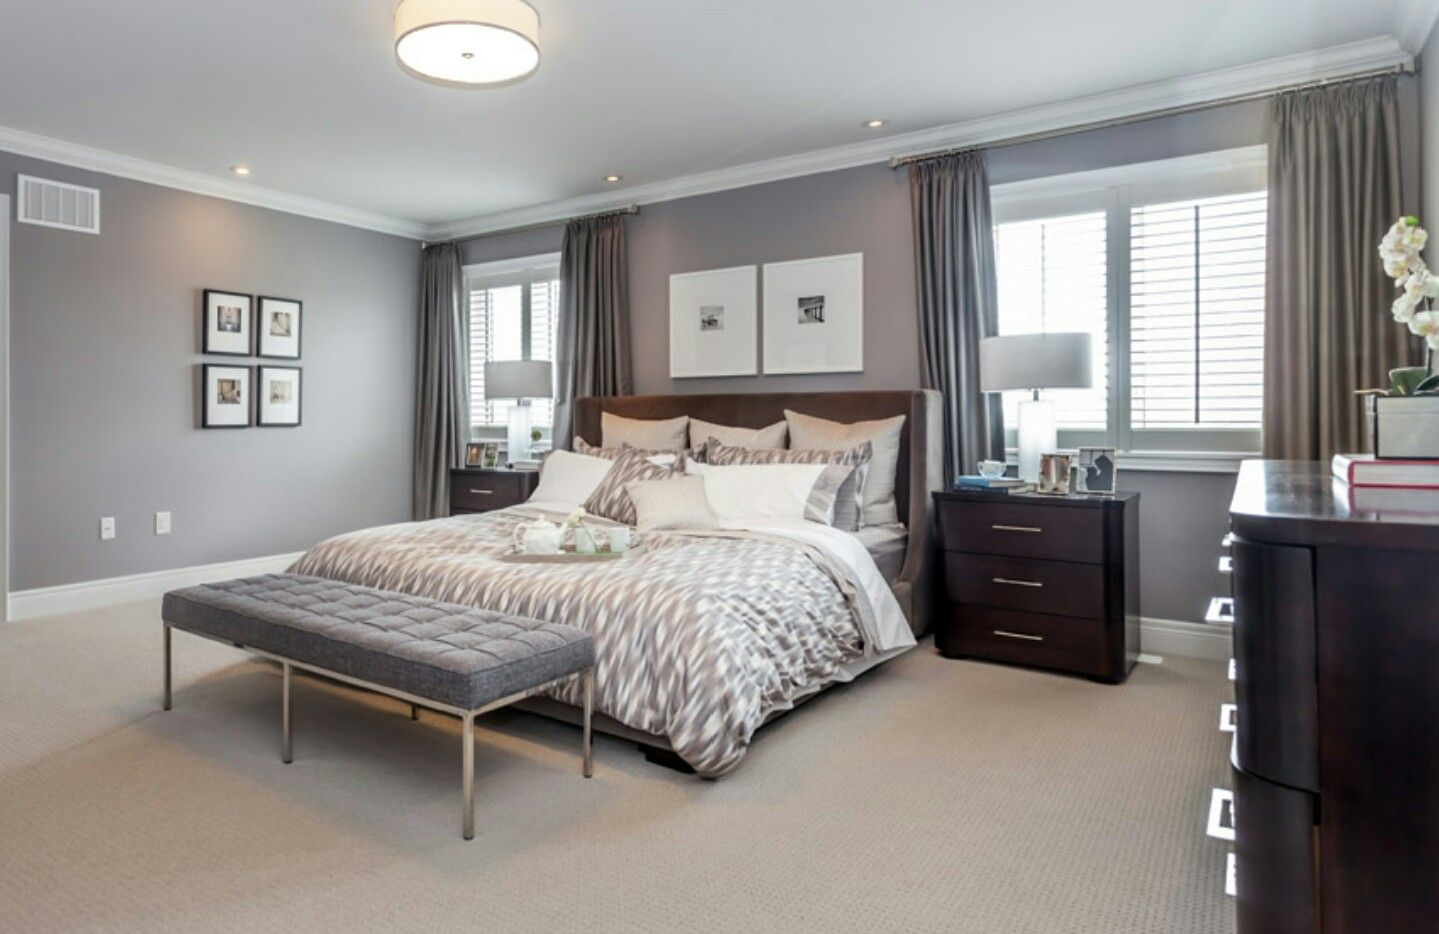 Pin By Amber Taylor On Household Projects Luxury Bedroom Master